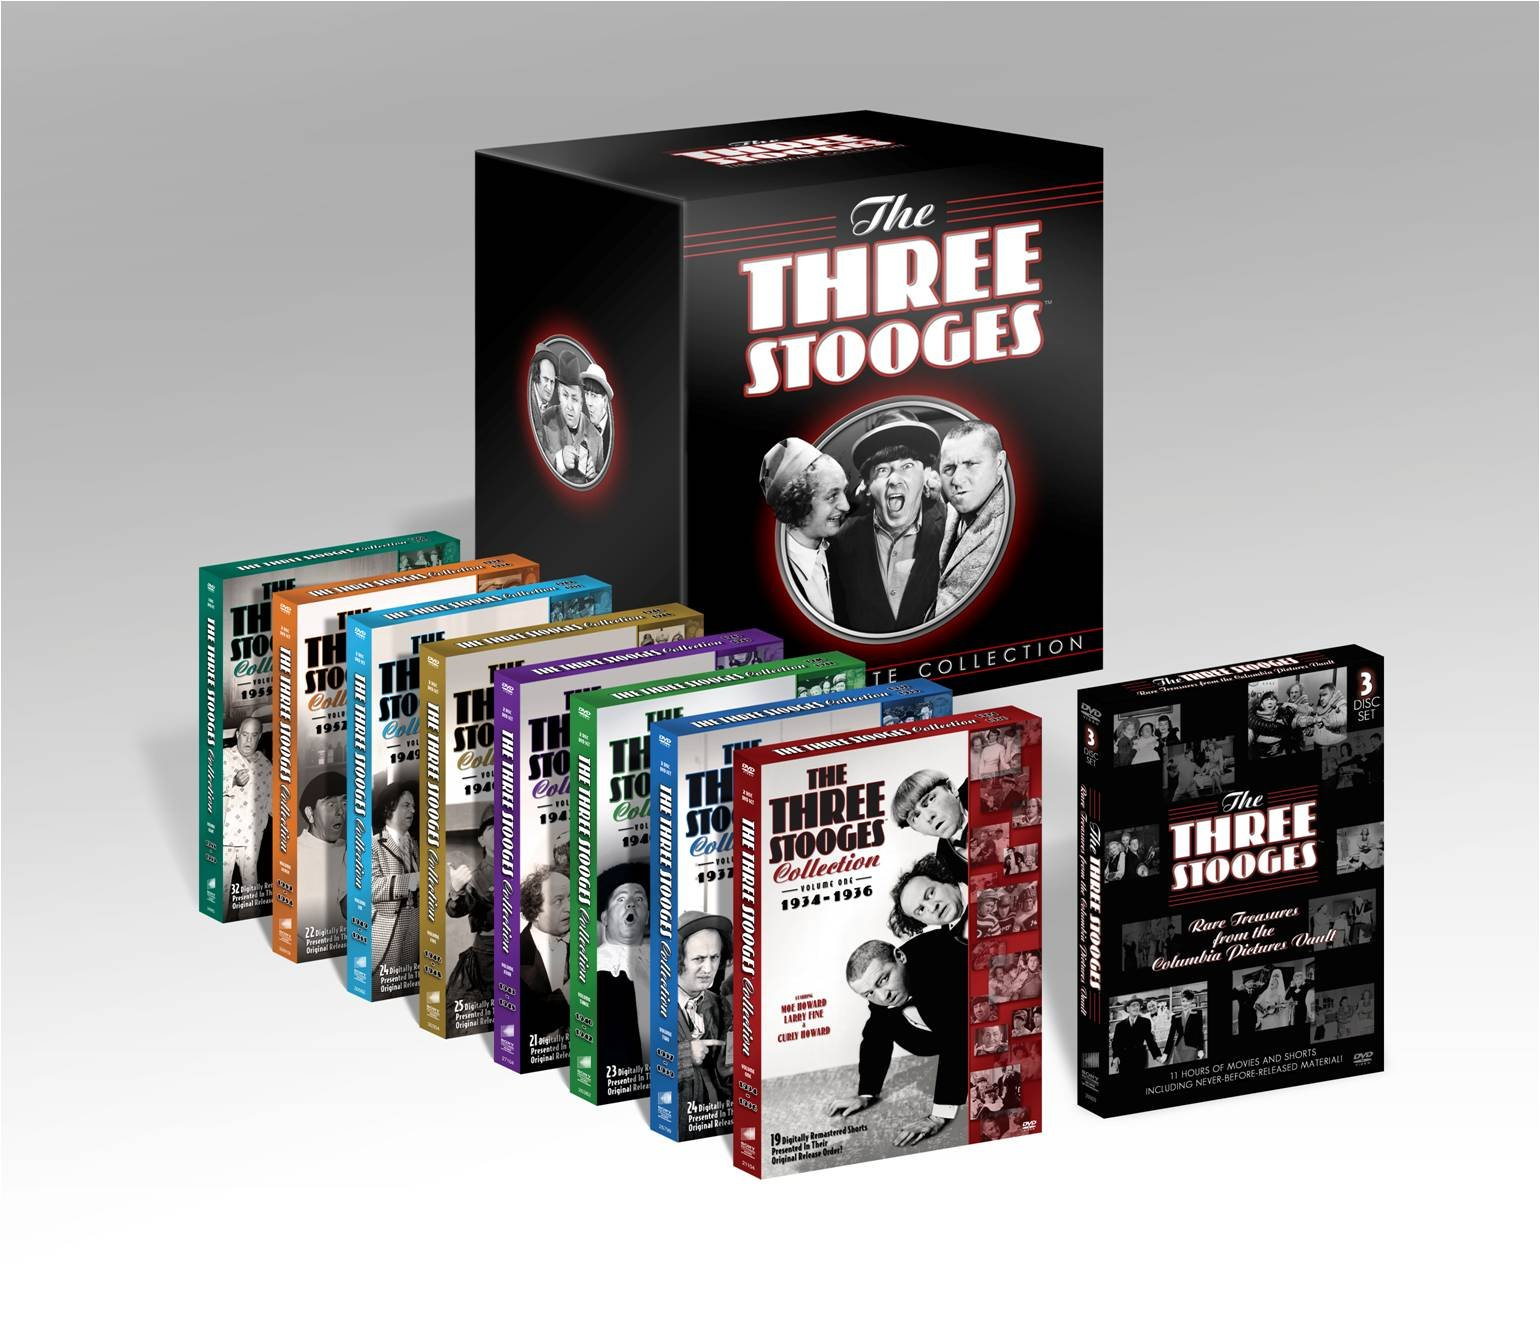 The Three Stooges: The Ultimate Collection by Columbia Tri Star